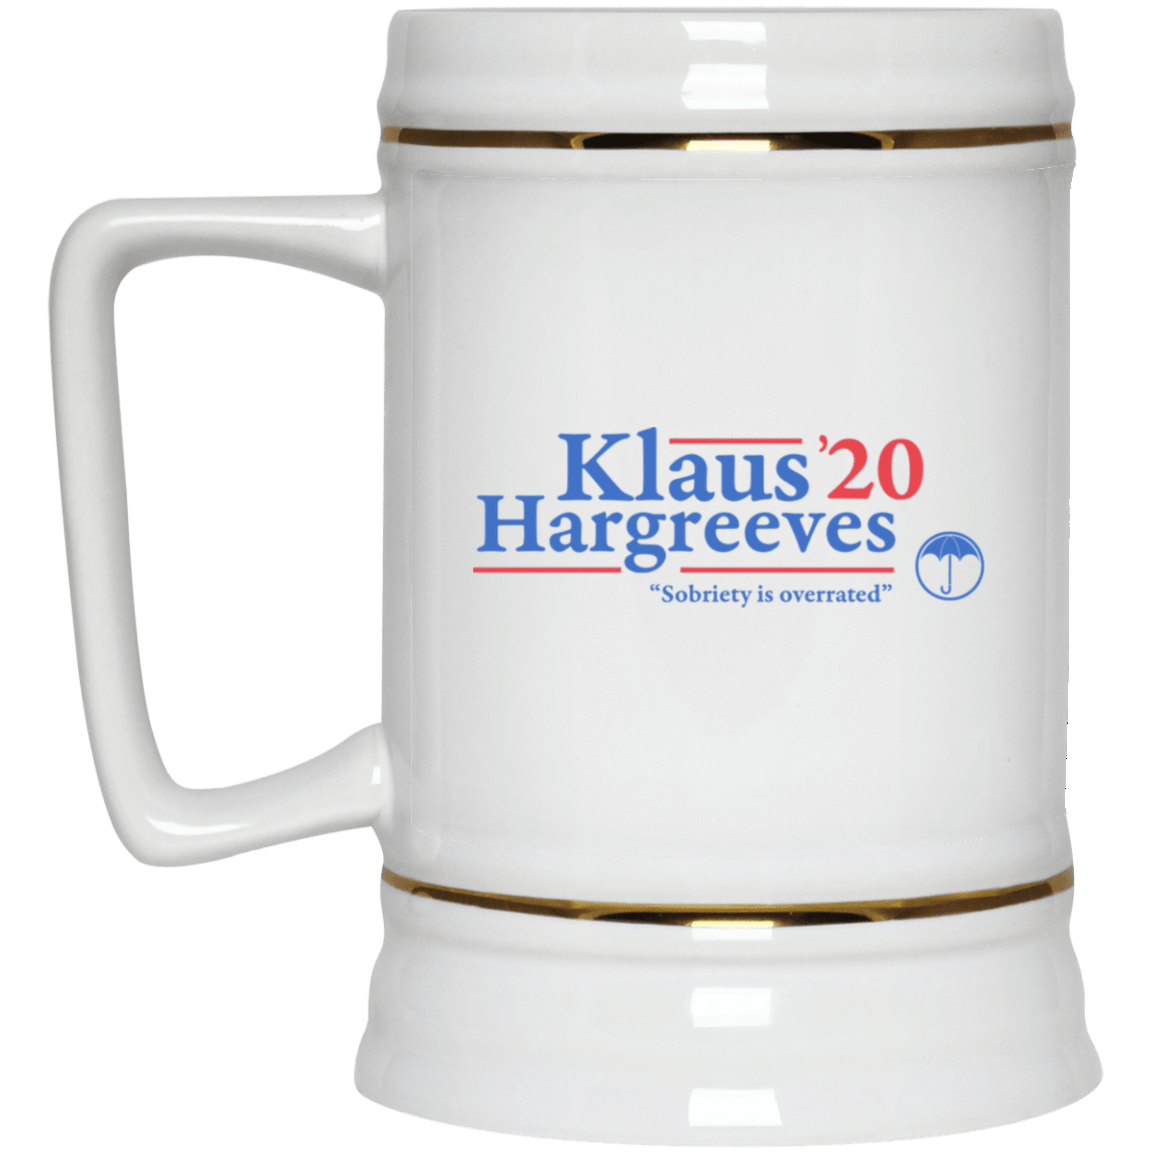 Klaus Hargreeves 2020 Sobriety Is Overrated Mug 1035-9819-88282903-47459 - Tee Ript